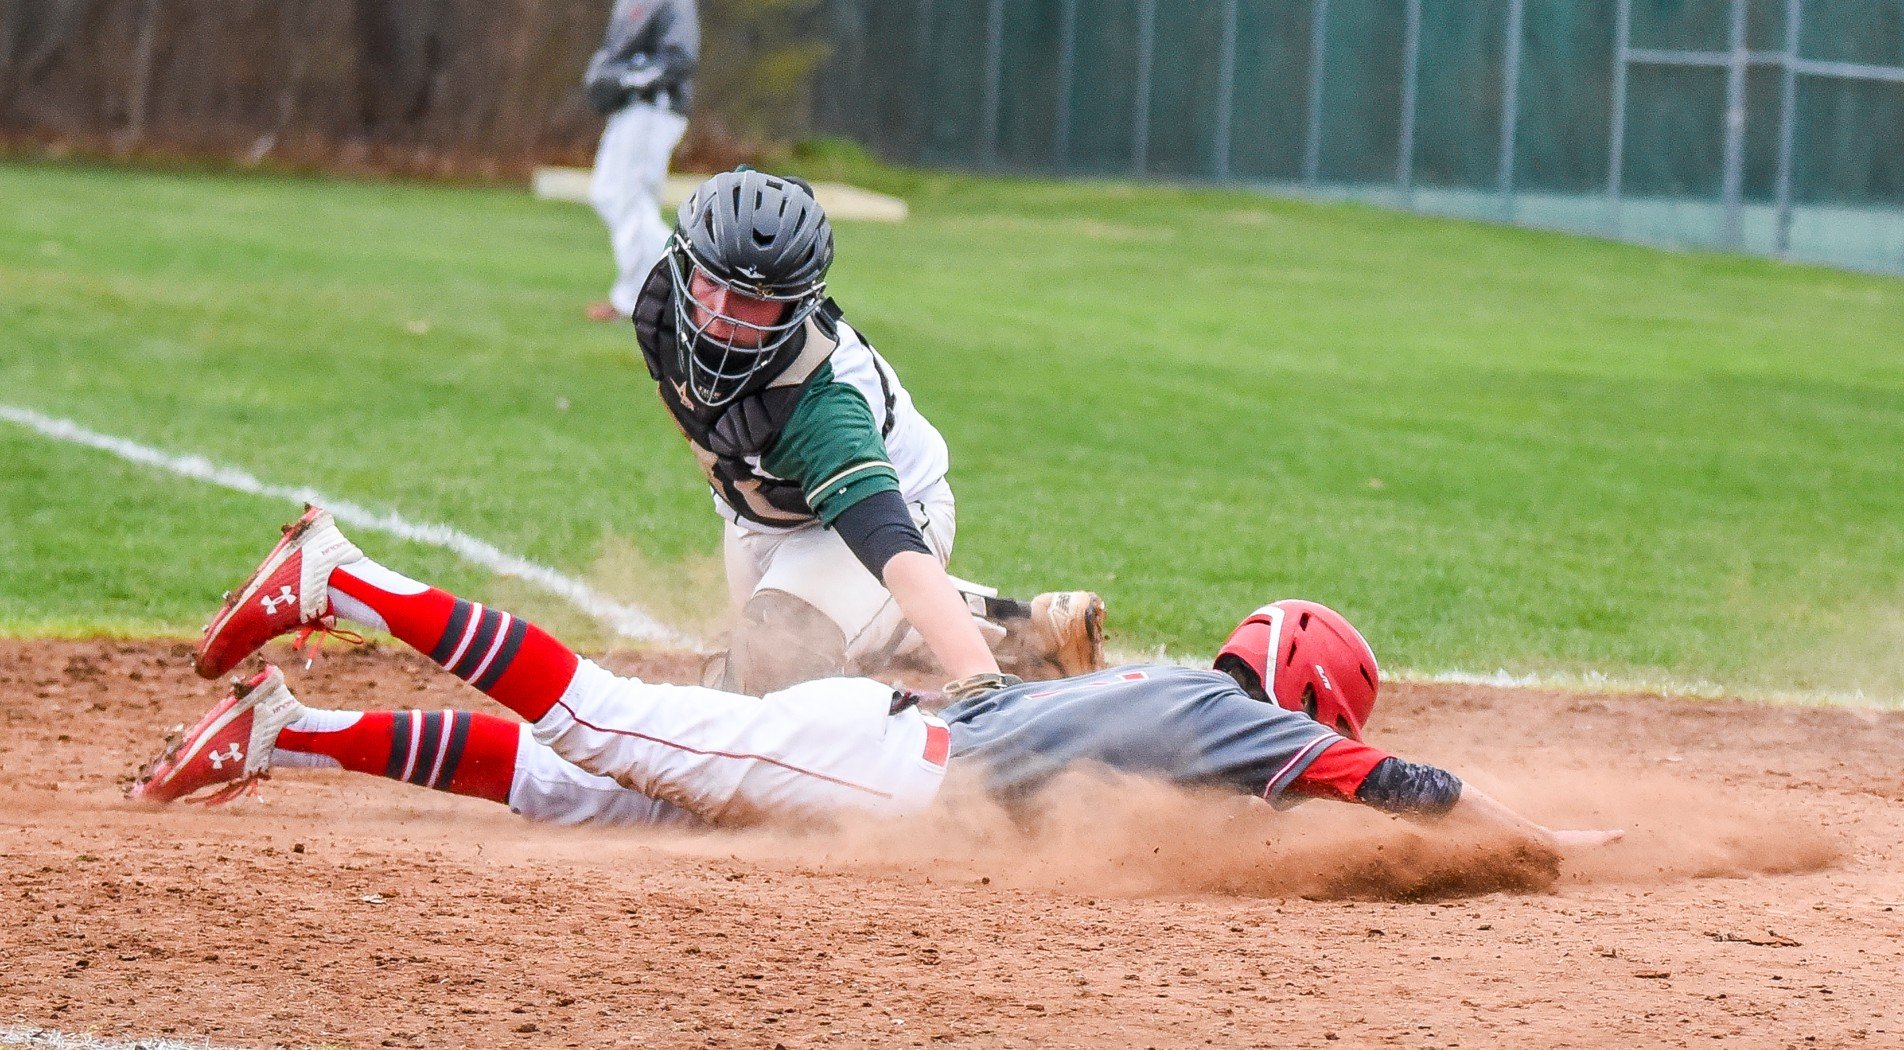 GoLocalProv | VIDEO and PHOTO GALLERY: Cranston West and Bishop